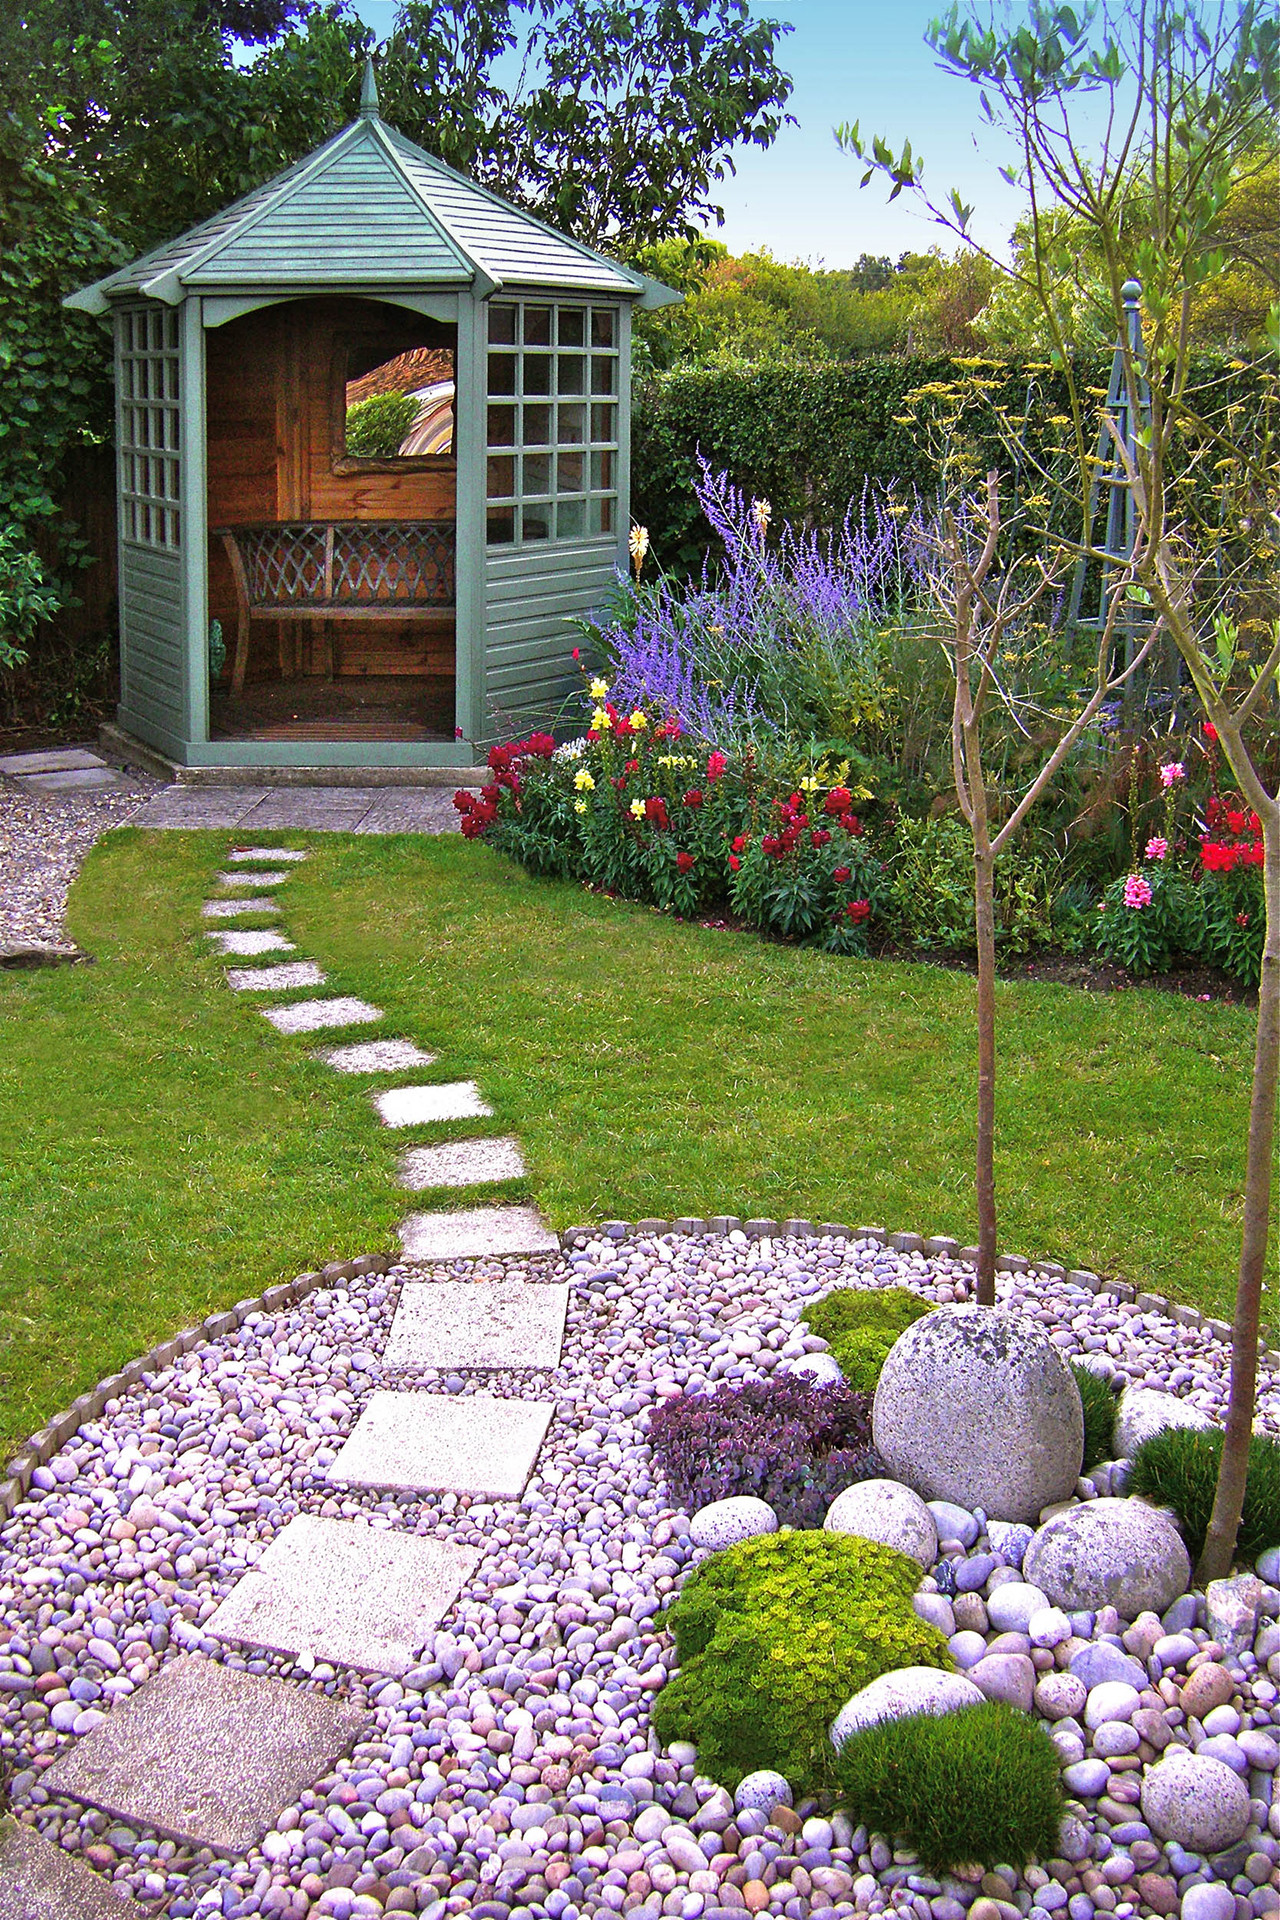 50 Best Backyard Landscaping Ideas And Designs In 2019 with regard to 10 Awesome Ideas How to Build Small Backyard Landscaping Pictures